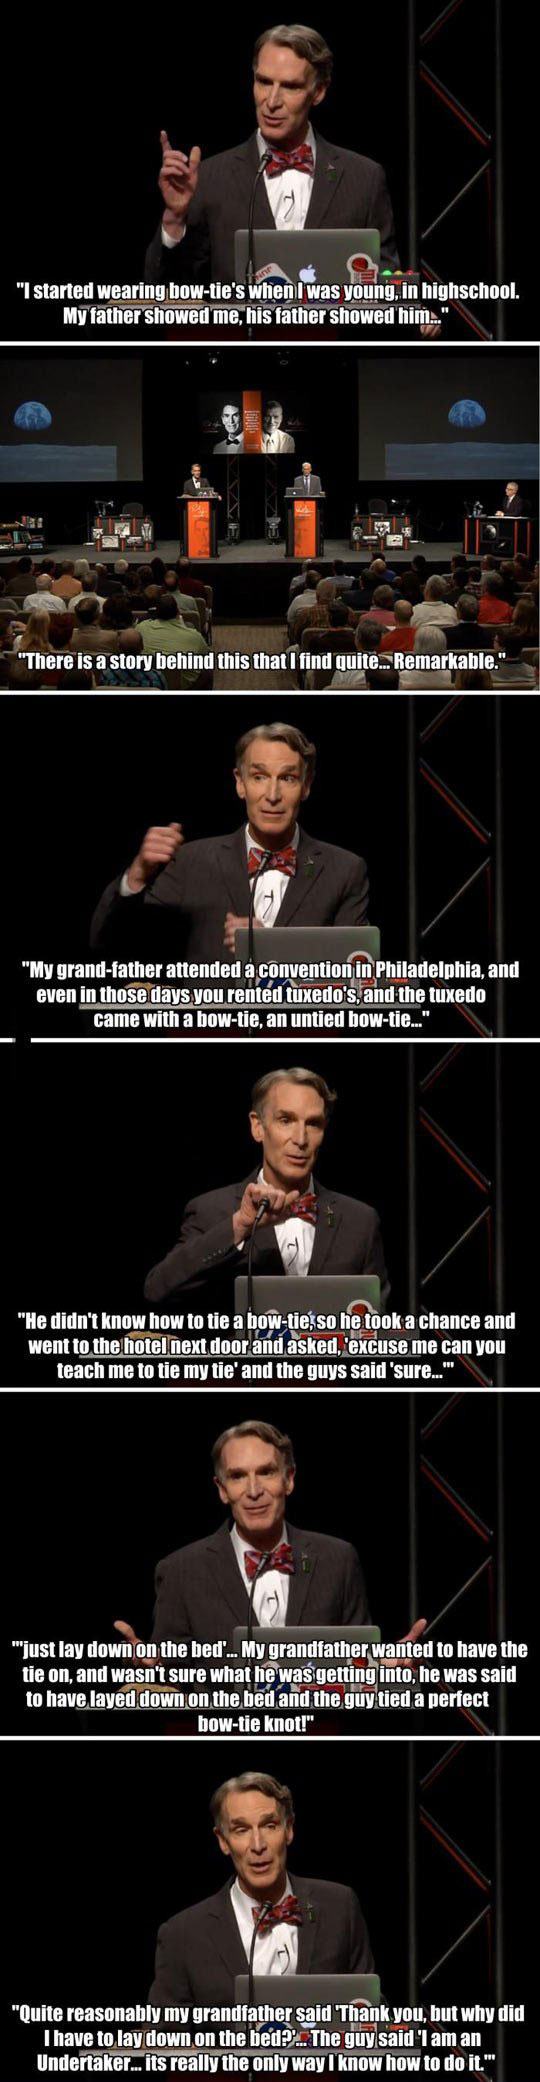 funny-Bill-Nye-bow-tie-story